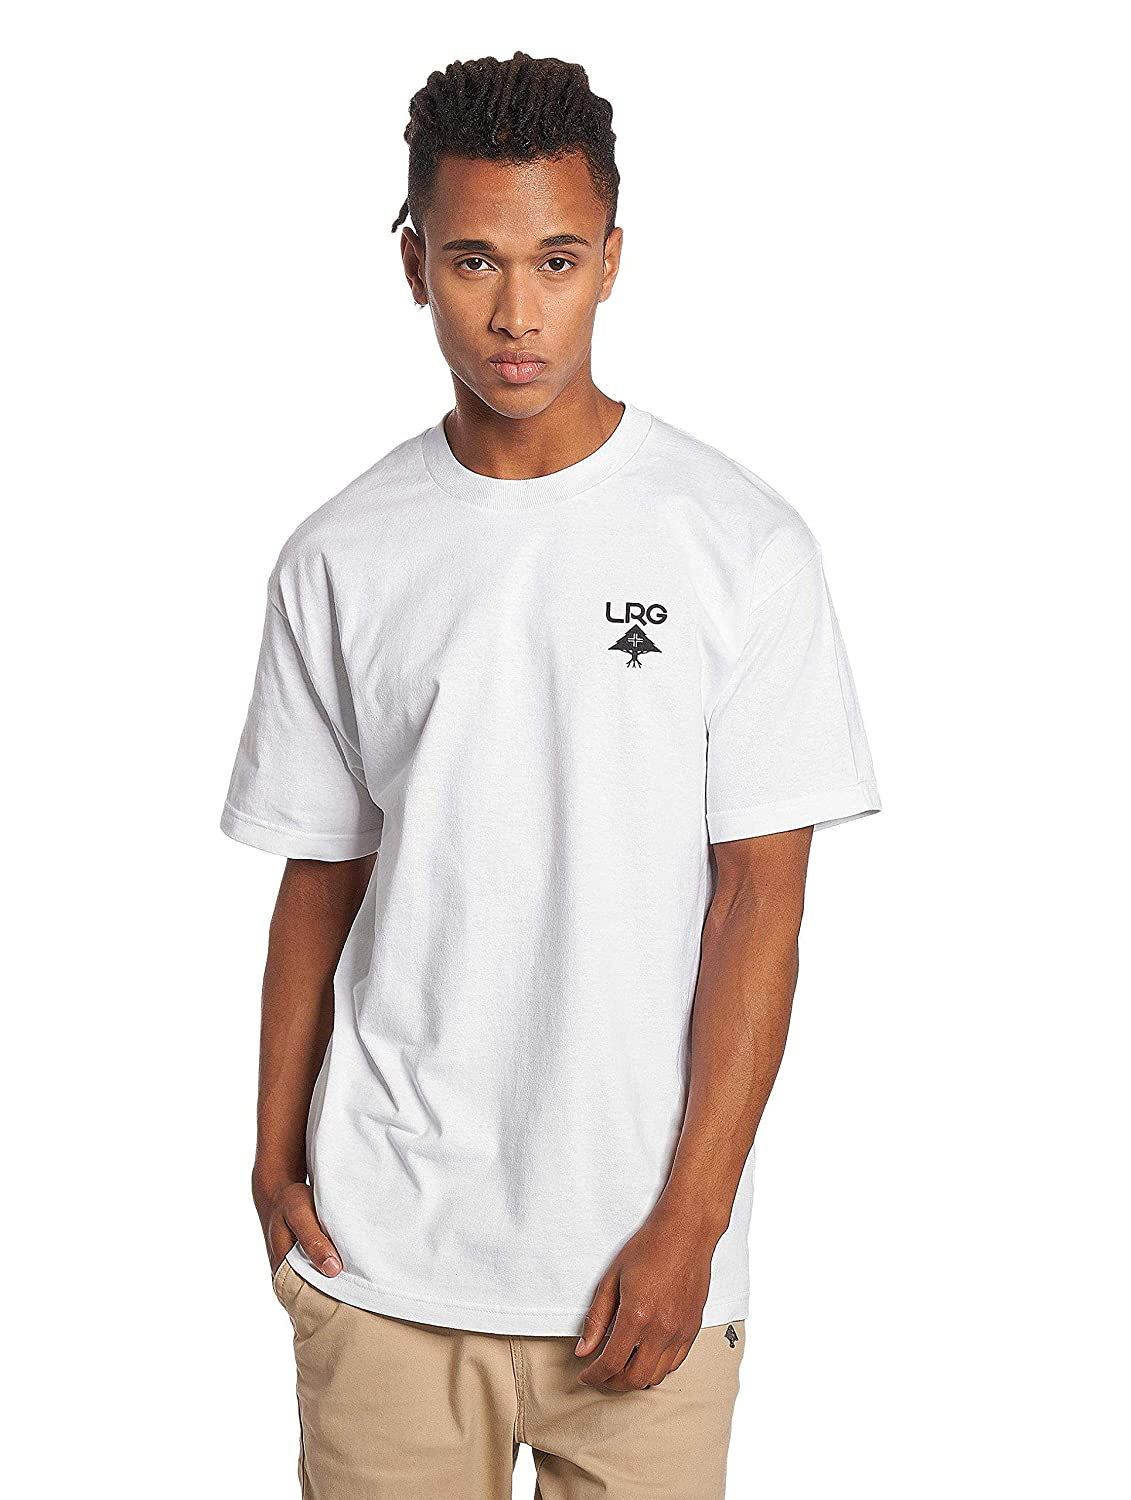 LRG Mens Lifted Research Collection Graphic Design T-Shirt